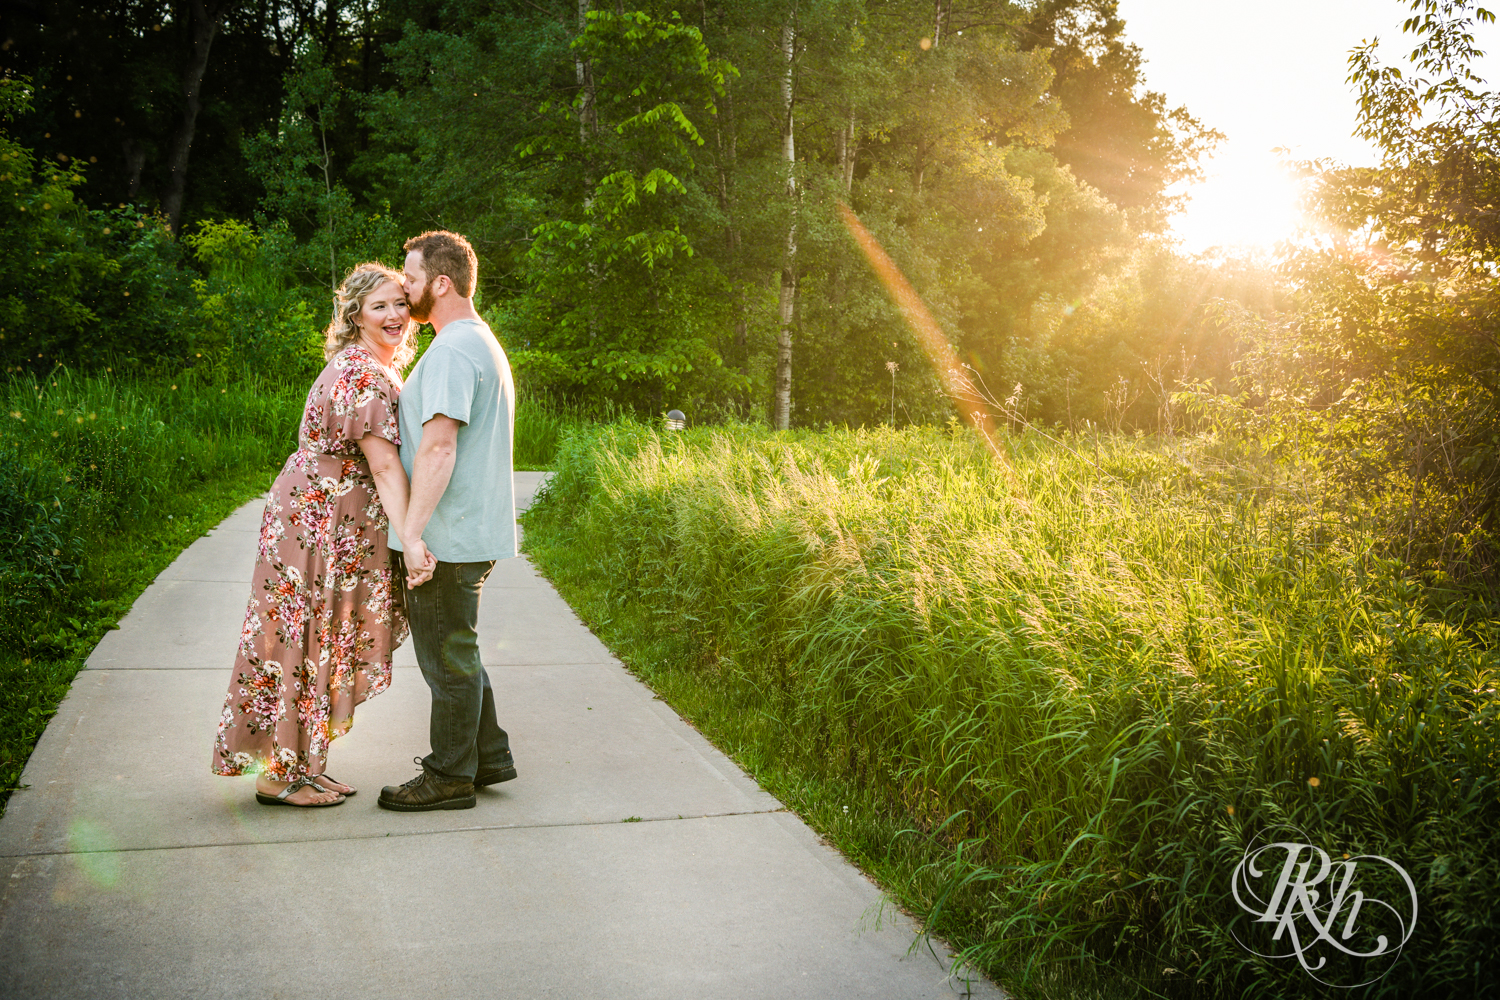 Constance & Josh - Minnesota Engagement Photography - Lebanon Hills Regional Park - RKH Images - Blog (10 of 18).jpg